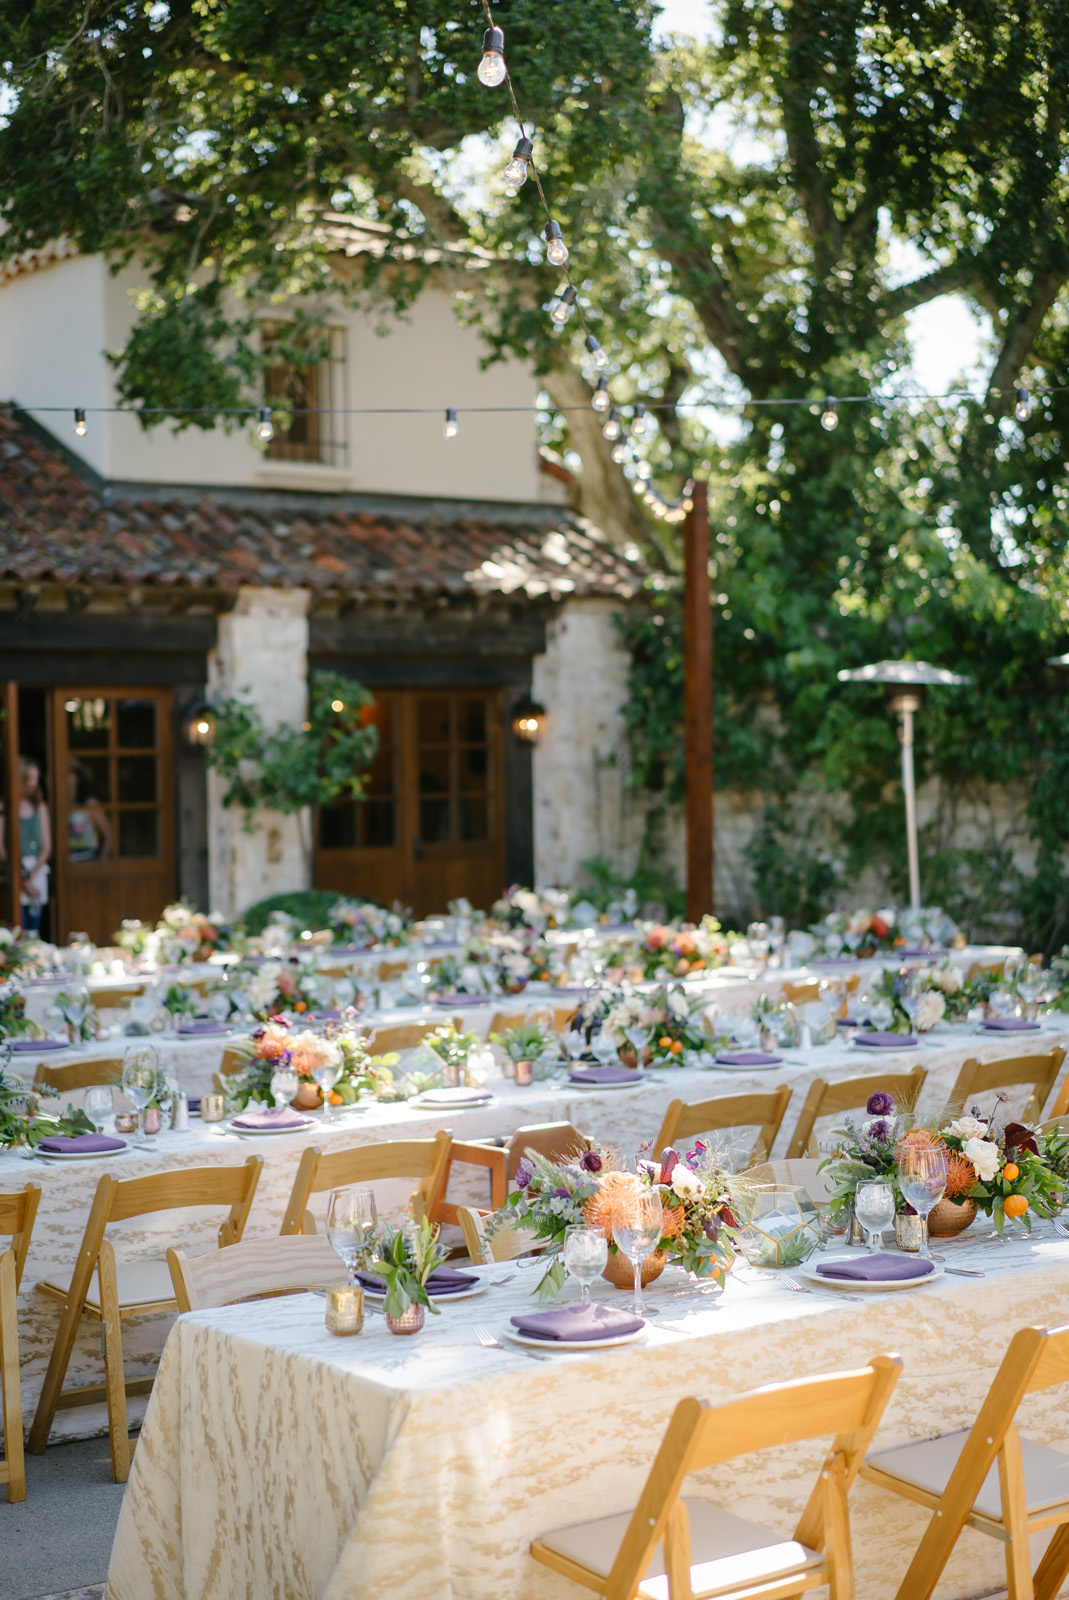 Pretty outdoor courtyard wedding reception with neutral pattern linens on tables